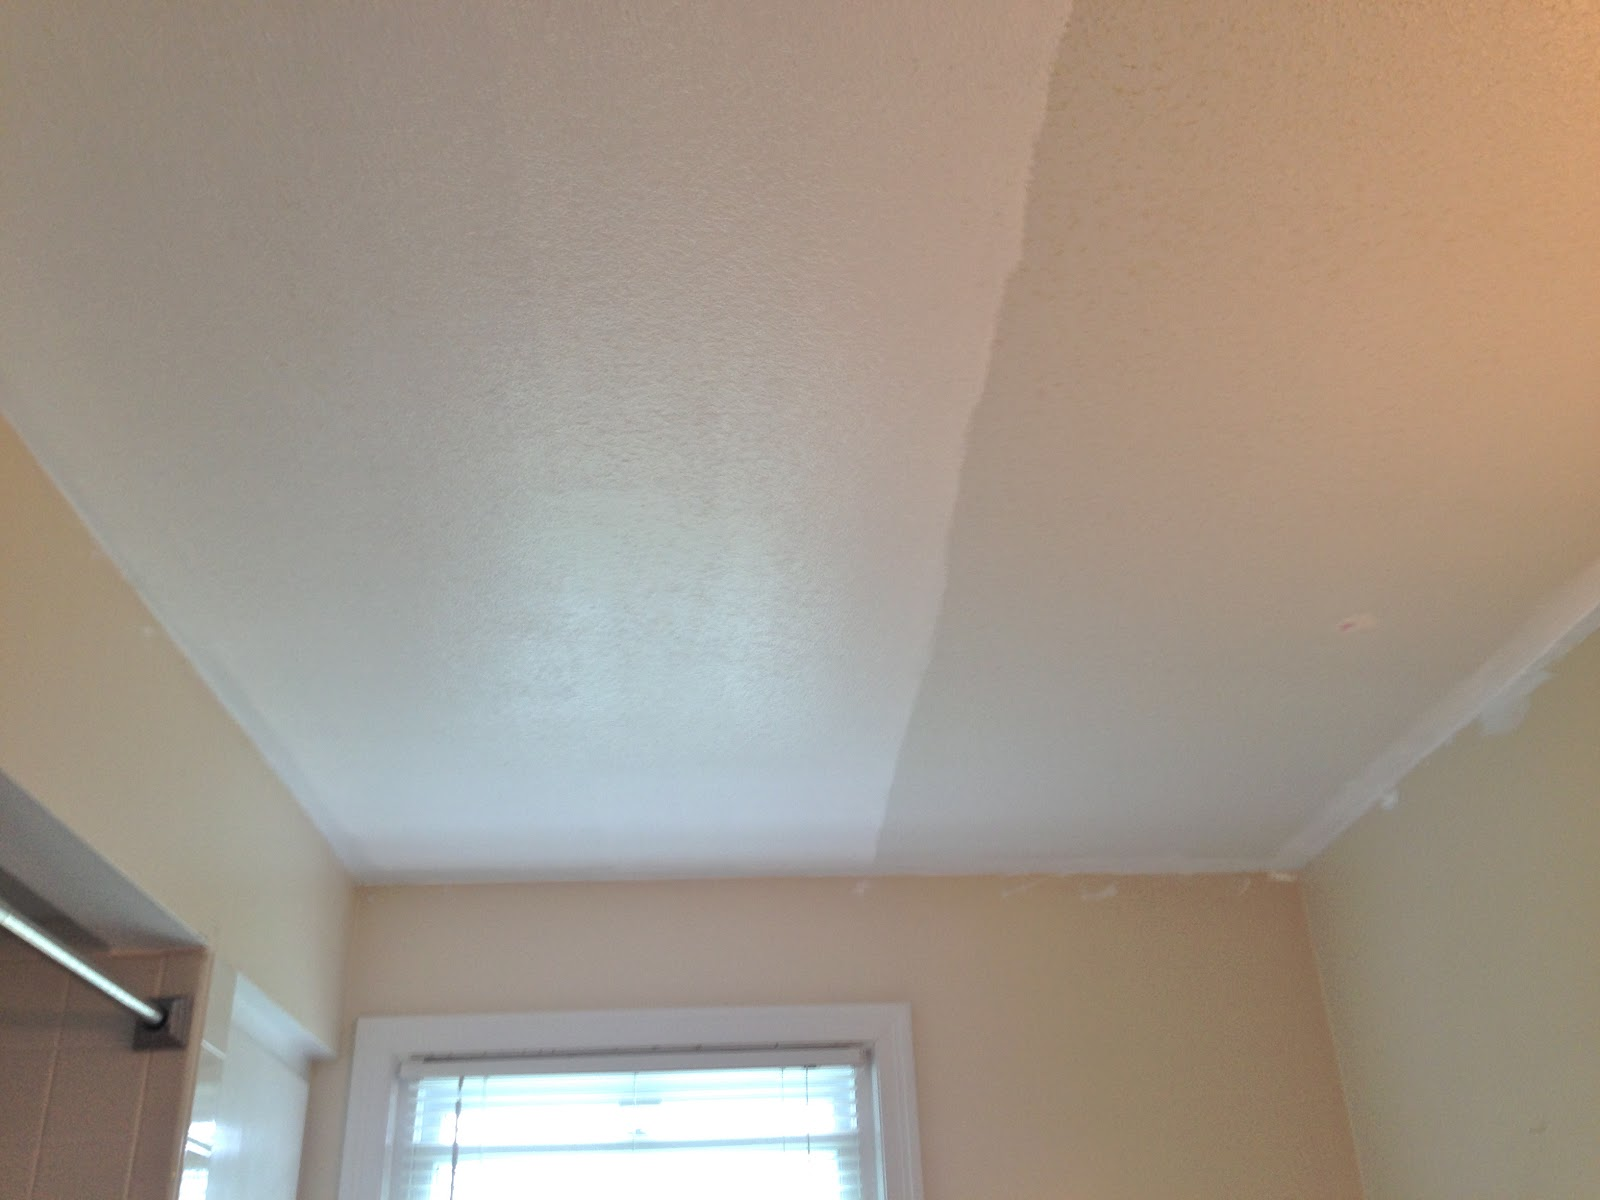 best ceiling paint - Video Search Engine at Search.com